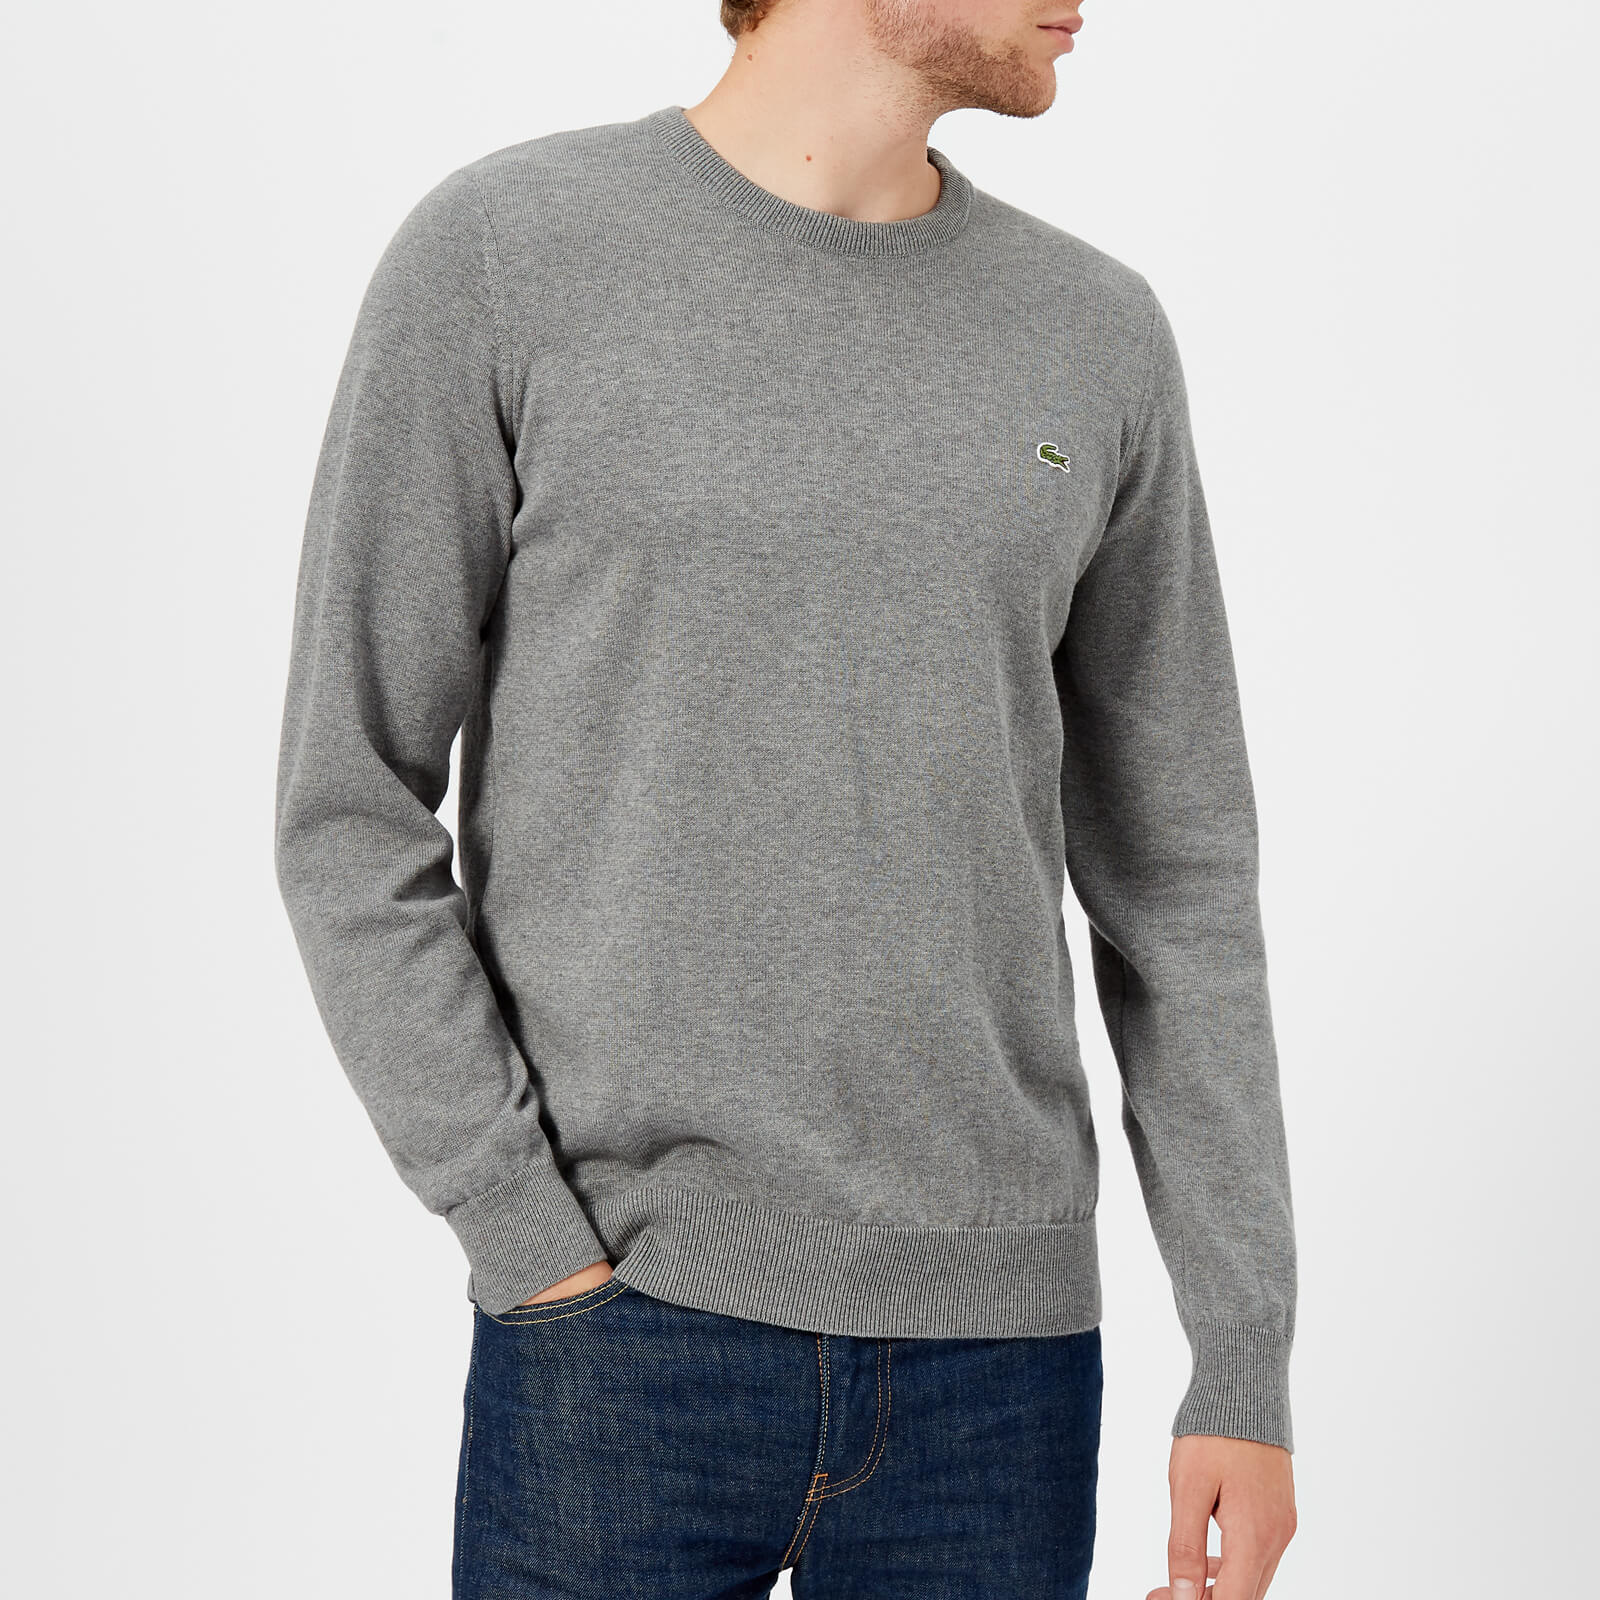 084ad34bc9c Lacoste Men's Cotton Crew Neck Knitted Jumper - Galaxite Chine/Flour